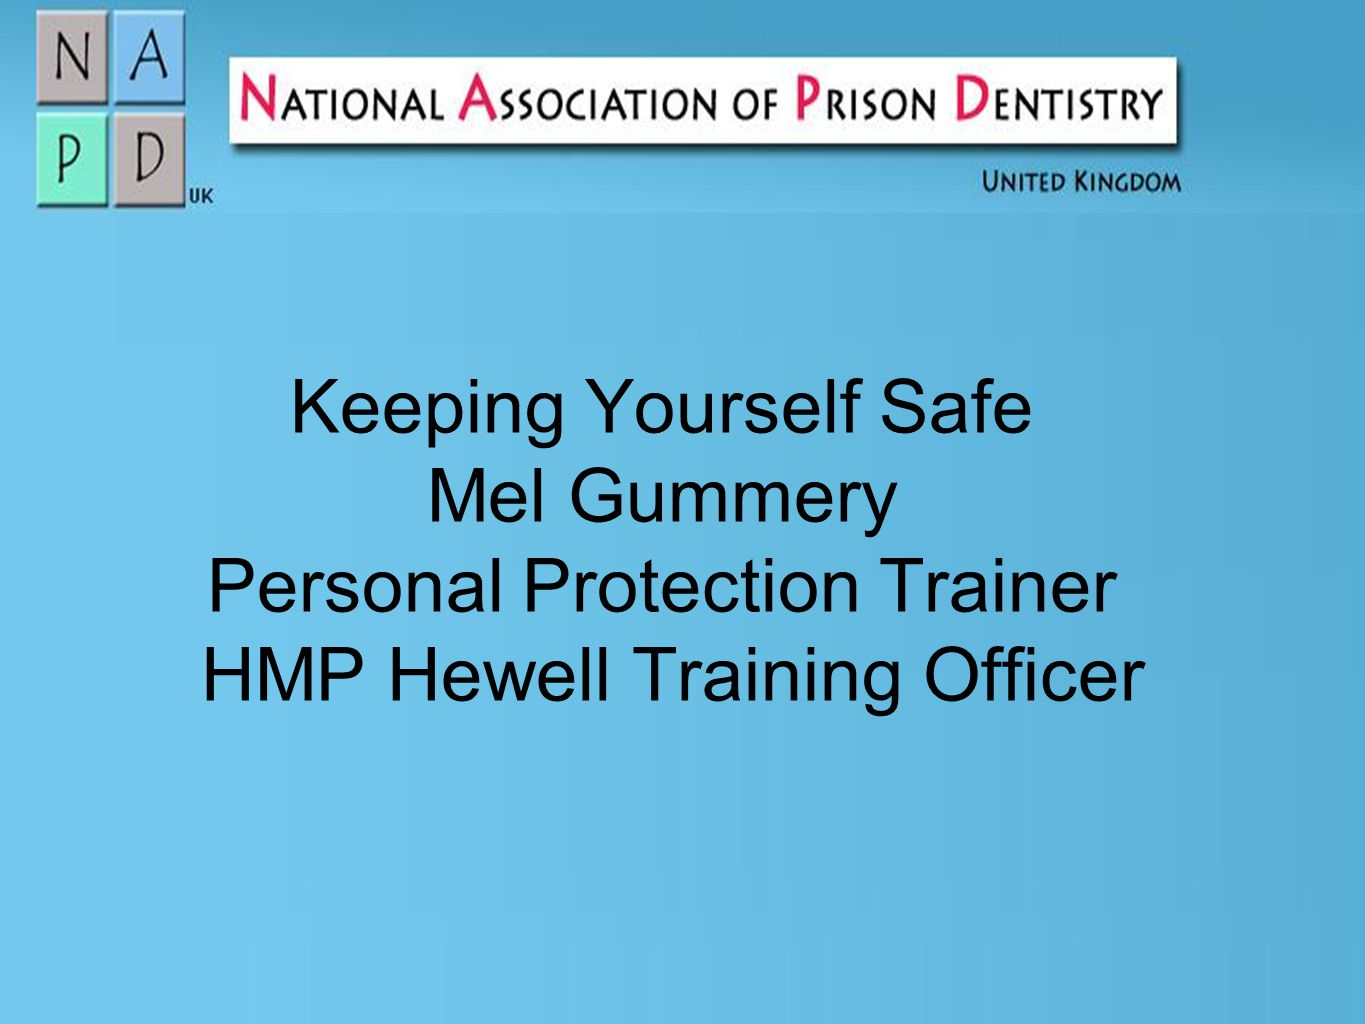 Keeping Yourself Safe Mel Gummery Personal Protection Trainer HMP Hewell Training Officer